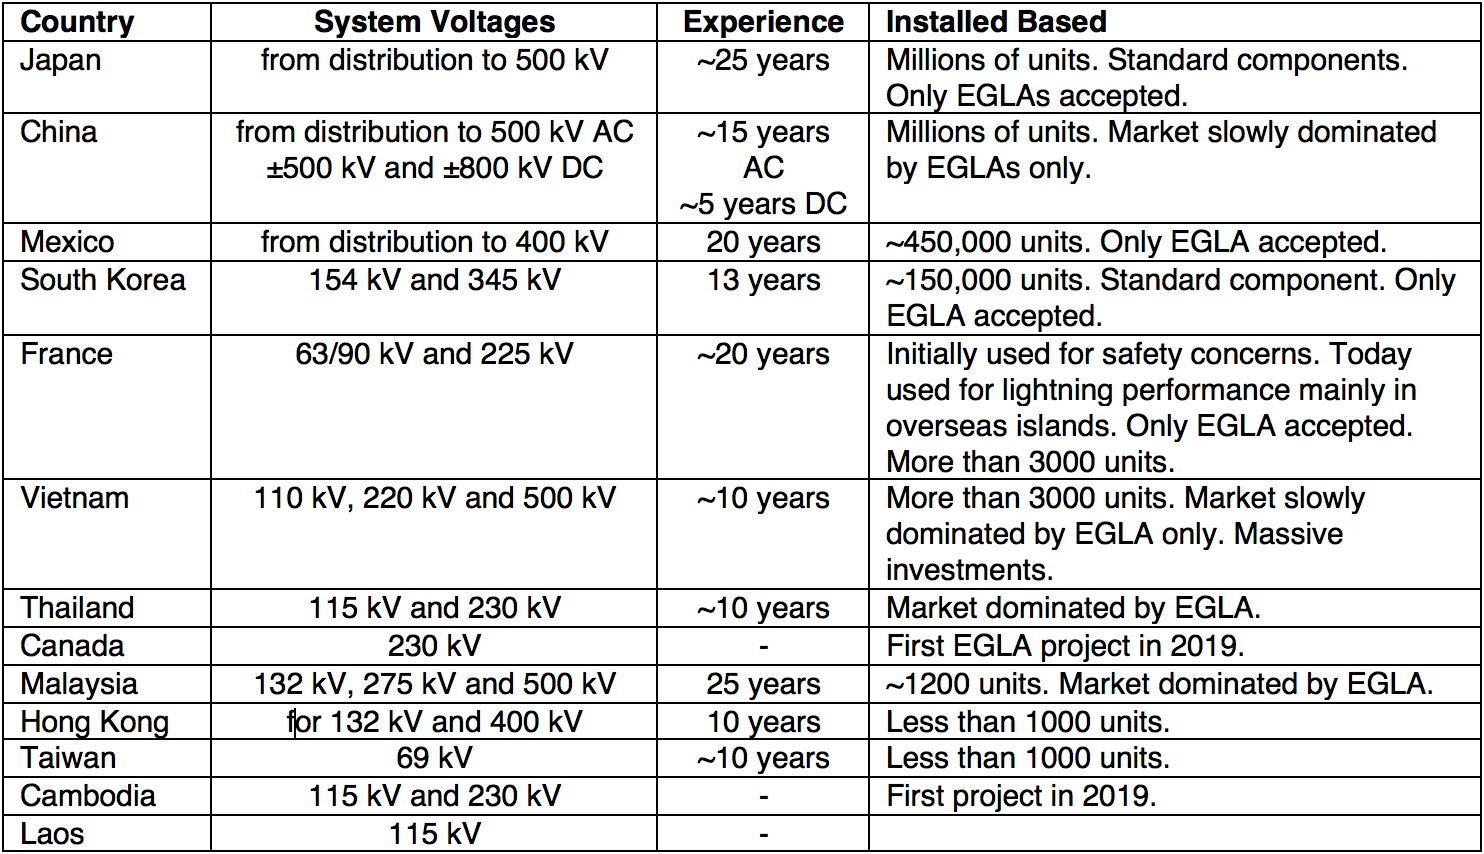 arresters Benefits & Advantages of Applying Externally Gapped Line Arresters Overview of Countries Favoring EGLA Types LSAs